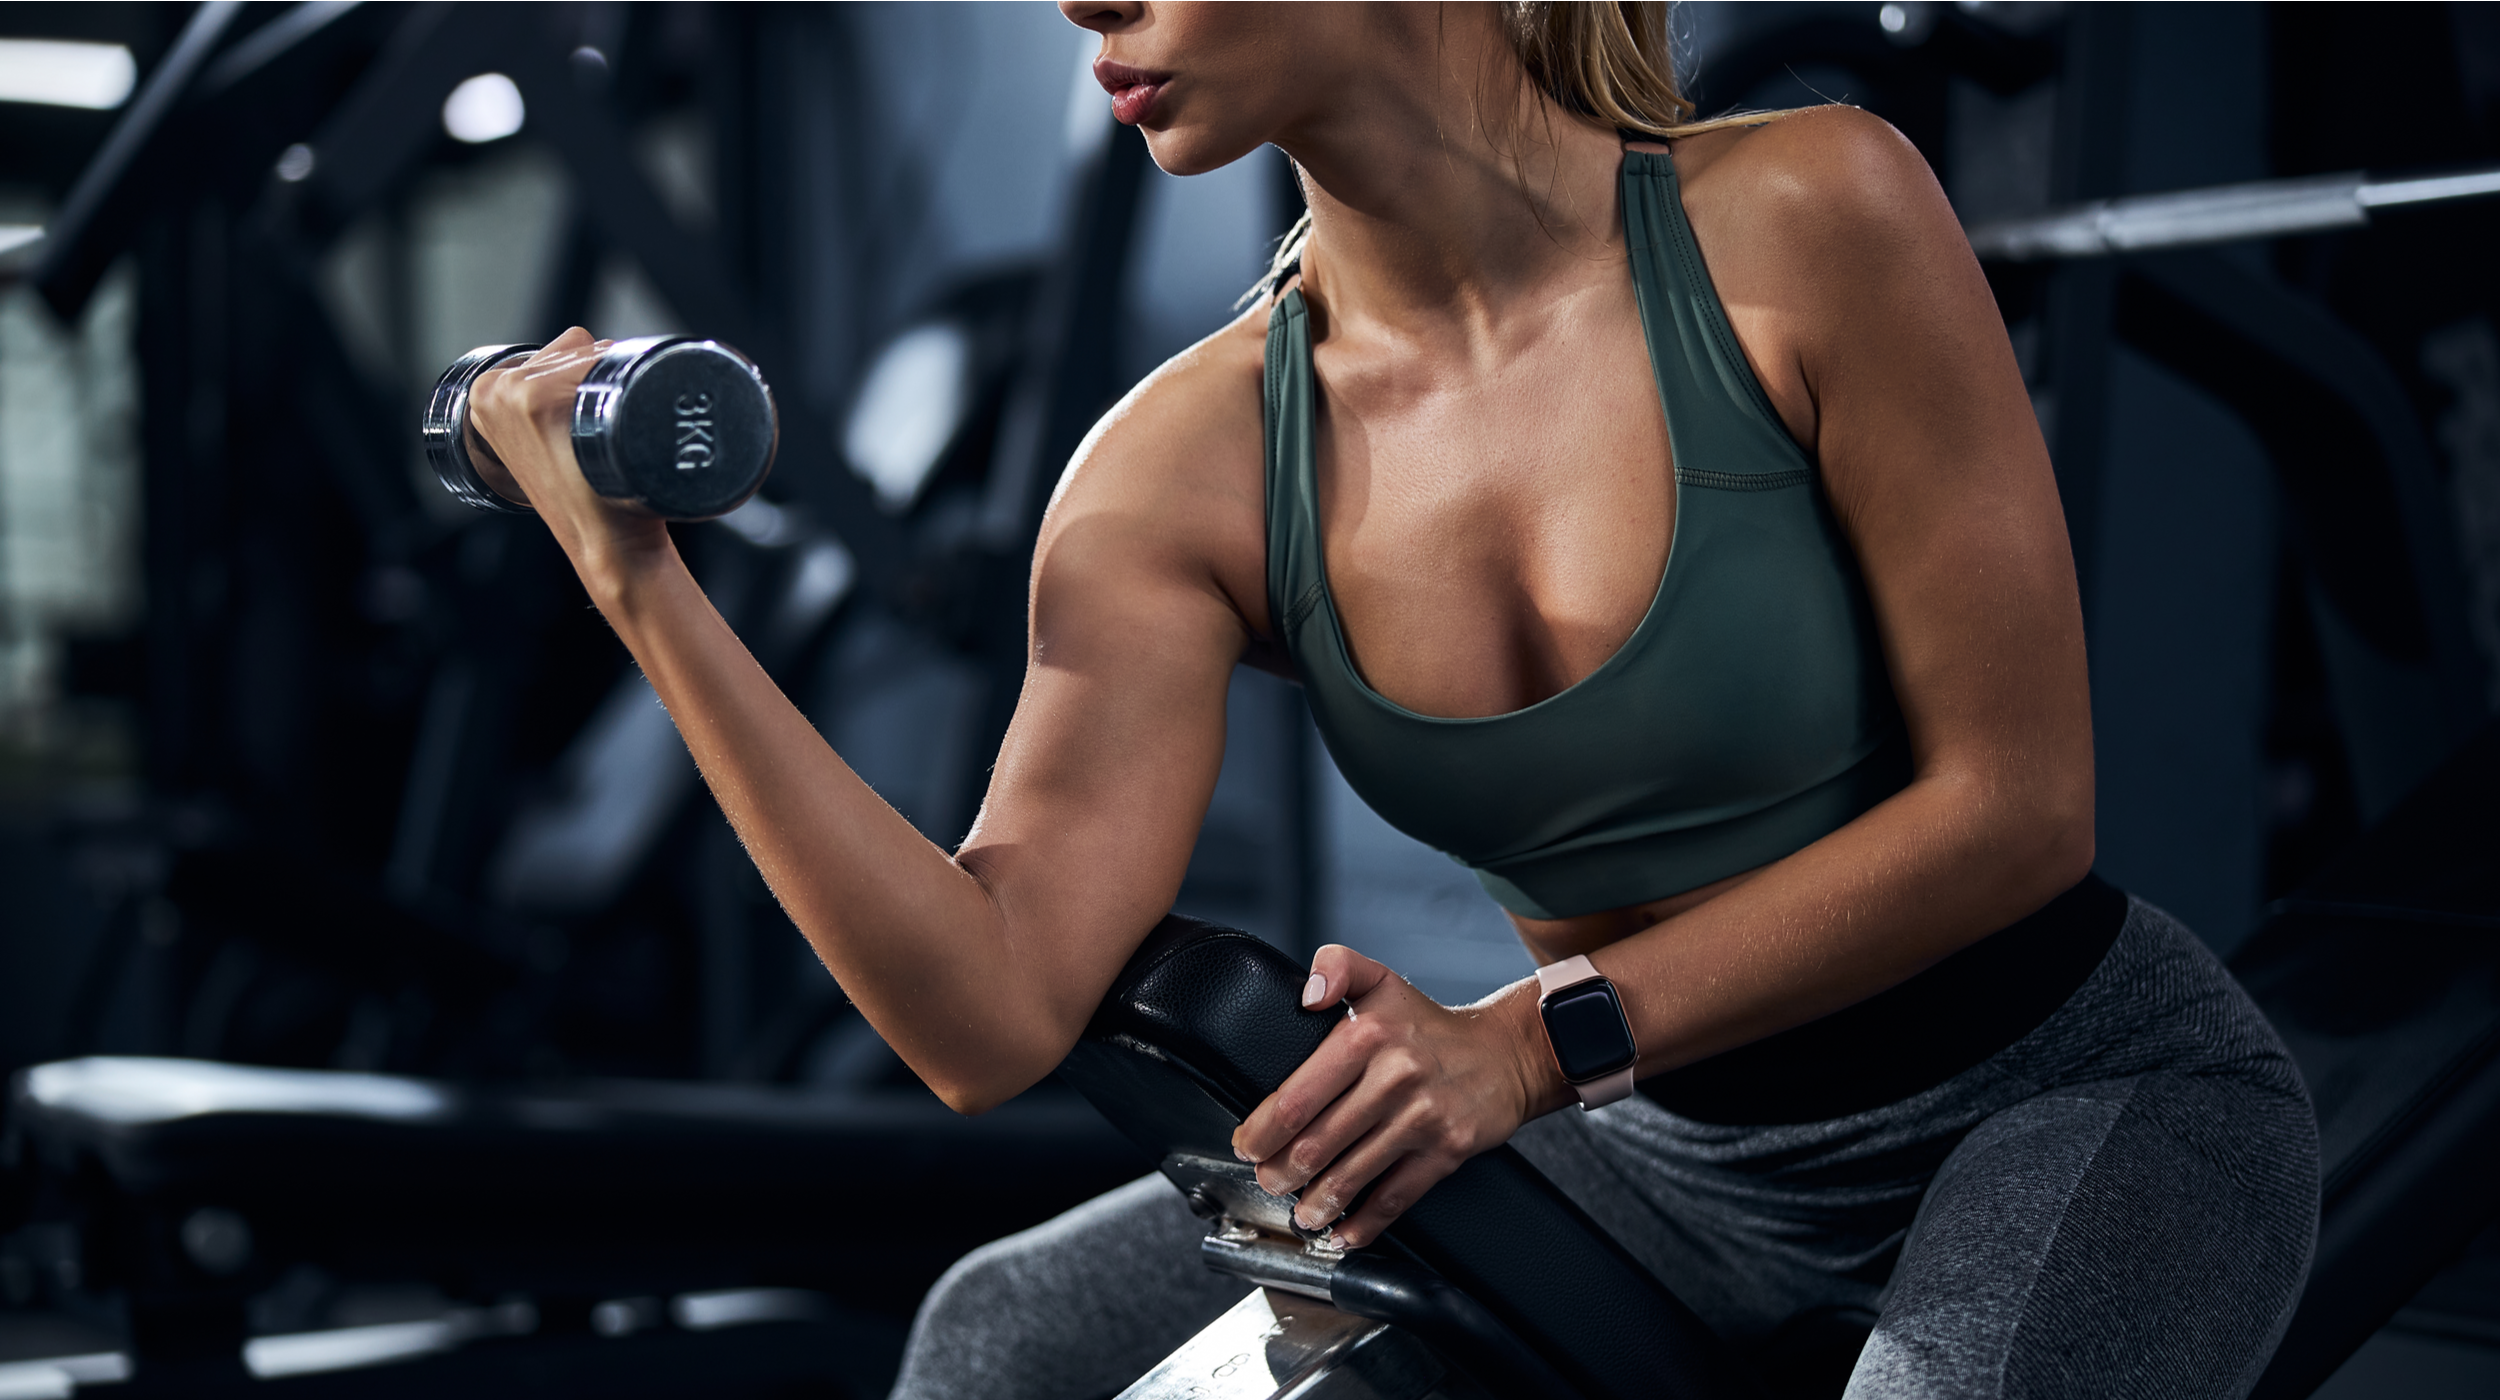 How to Get Started Lifting Weights if You Don't Know What You are Doing